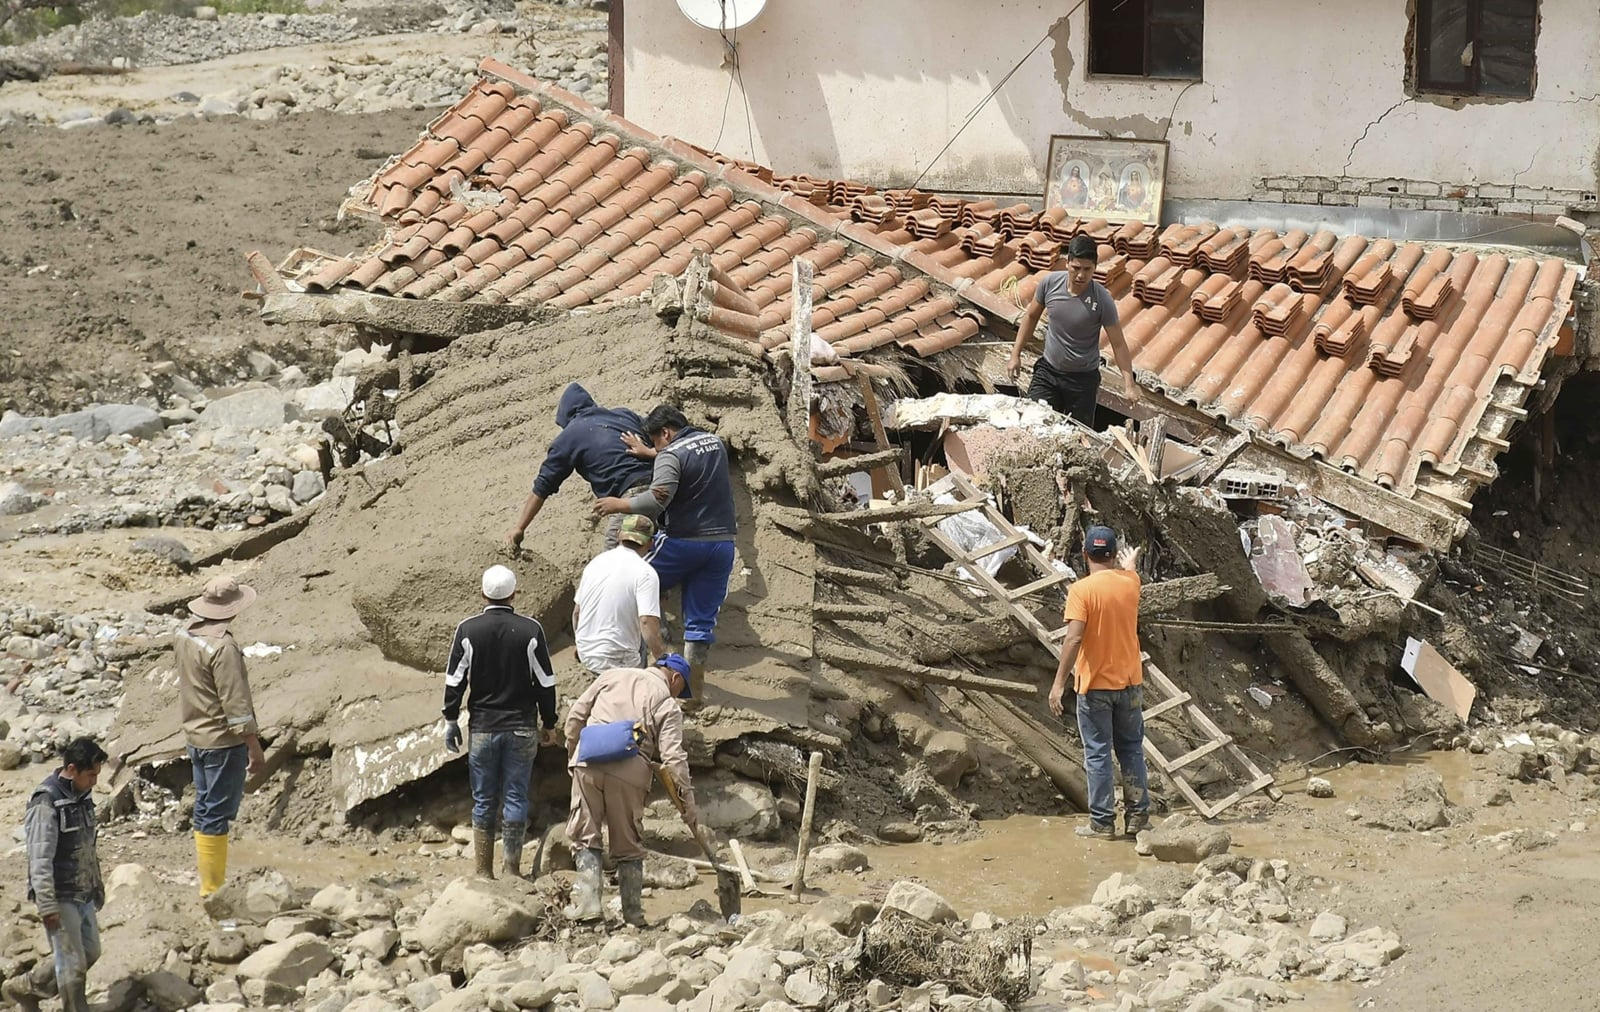 epa06503586 A group of people works clearing debris from a house affected by a mudslide that destroyed dozens of homes in Tiquipaya, a municipality near the city of Cochabamba, Bolivia, 07 February 2018. President of Bolivia, Evo Morales, announced the declaration of the 'state of emergency' in municipalities affected by floods in the country, which affected more than 8,200 families.  EPA/JORGE ABREGO Dostawca: PAP/EPA.